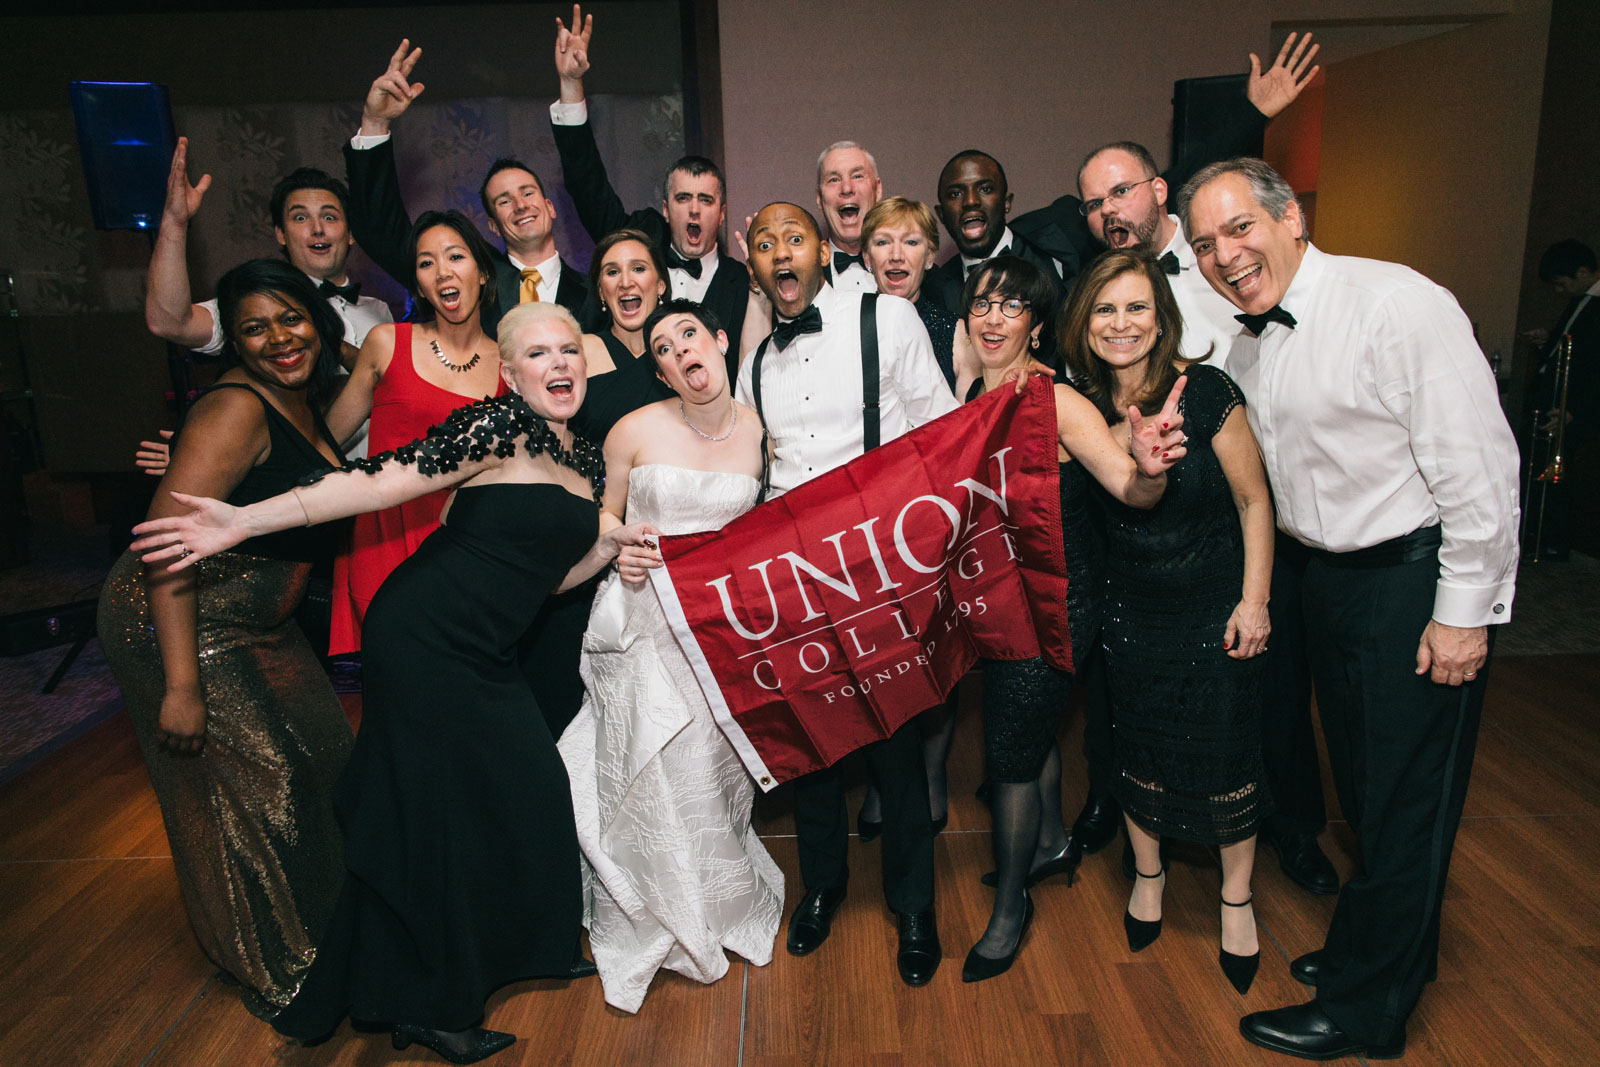 Bride and groom and wedding guests doing a silly pose holding Union college flag